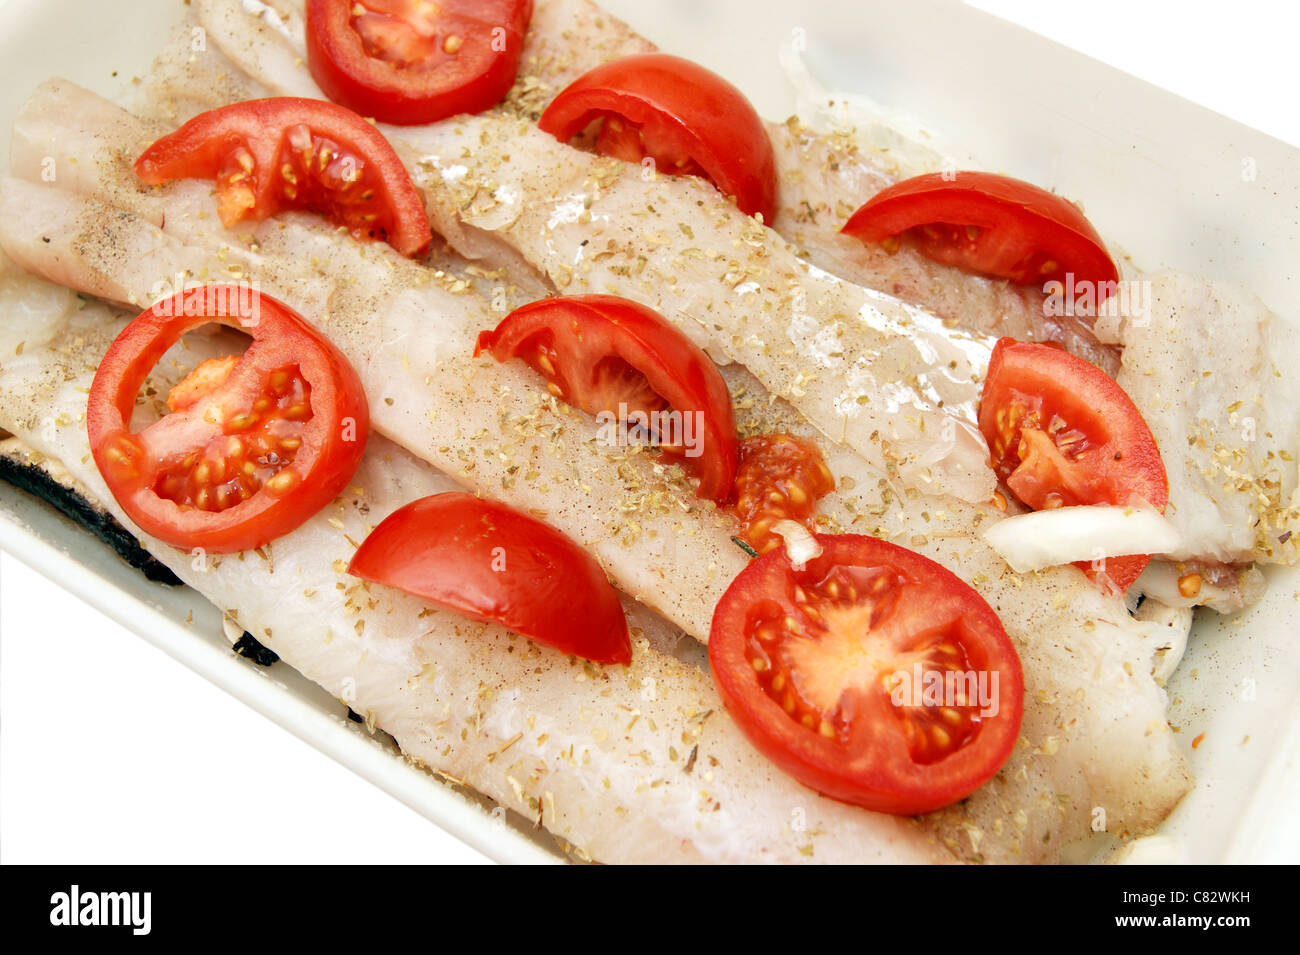 pollock / pollack fish fillets in dish for cooking sliced tomatoes & herbs (an alternative to cod) - Stock Image